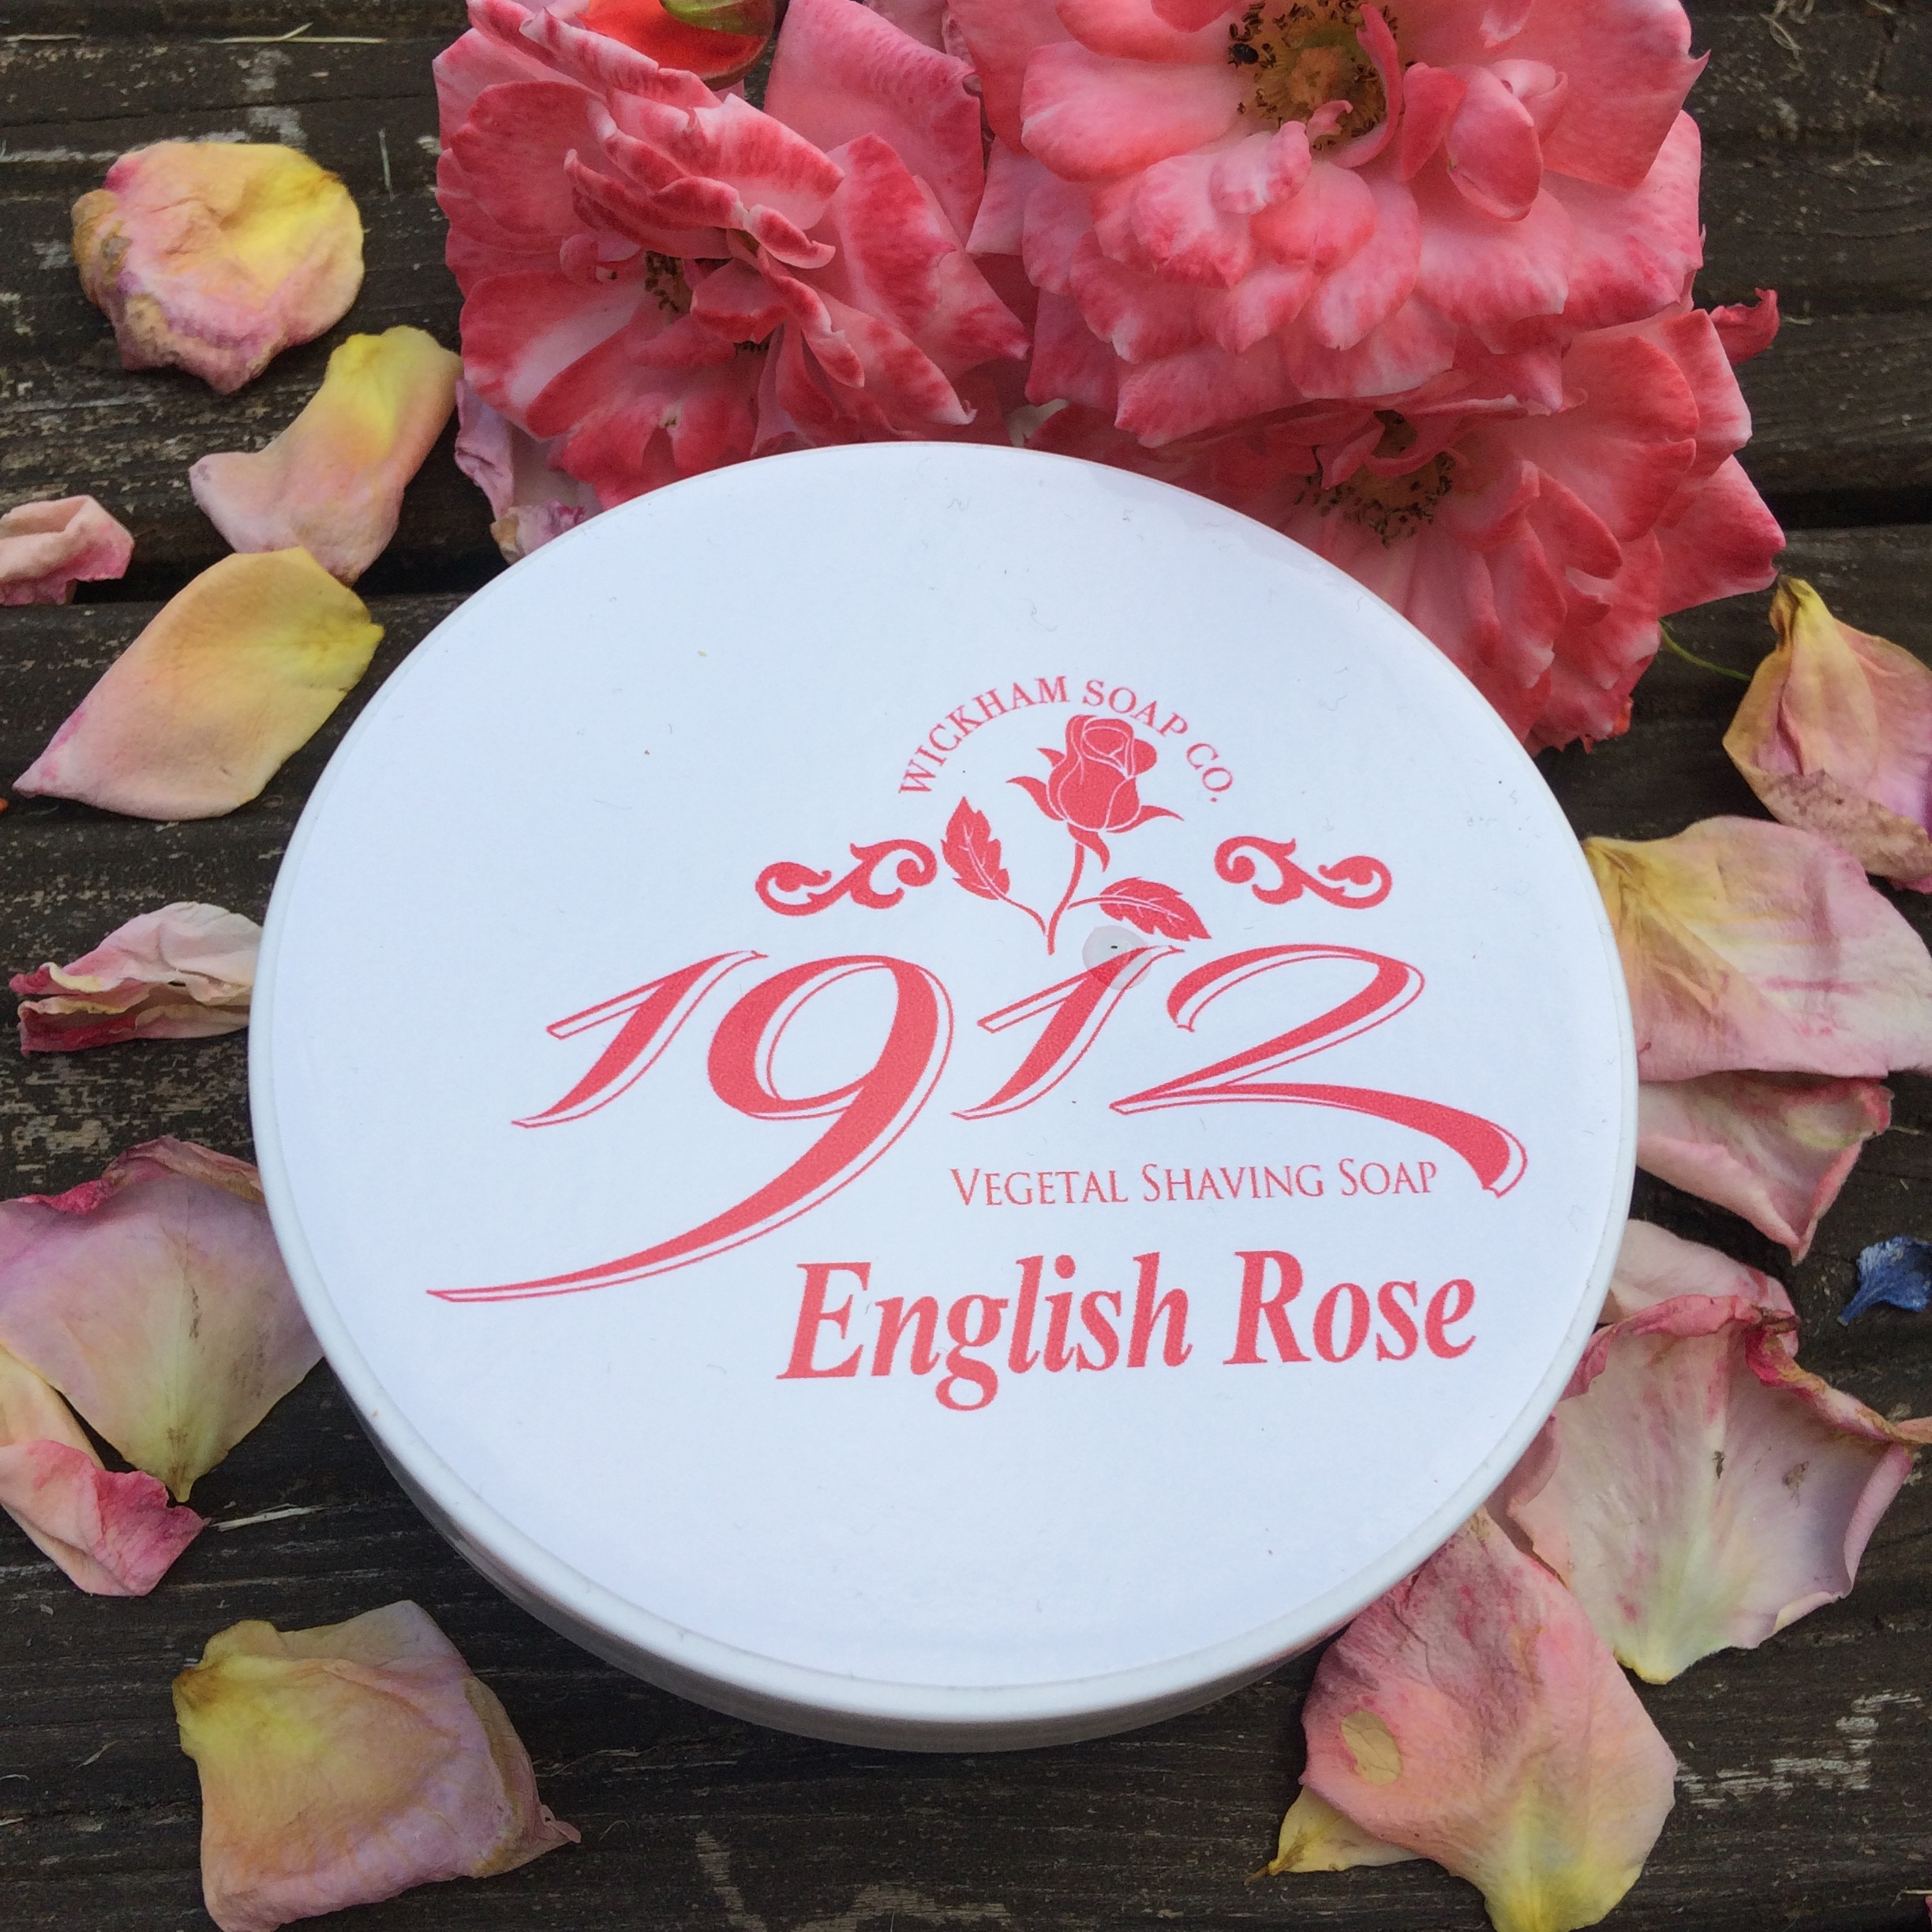 Wickham Soap Co 1912 Shaving Soap - English Rose | Agent Shave